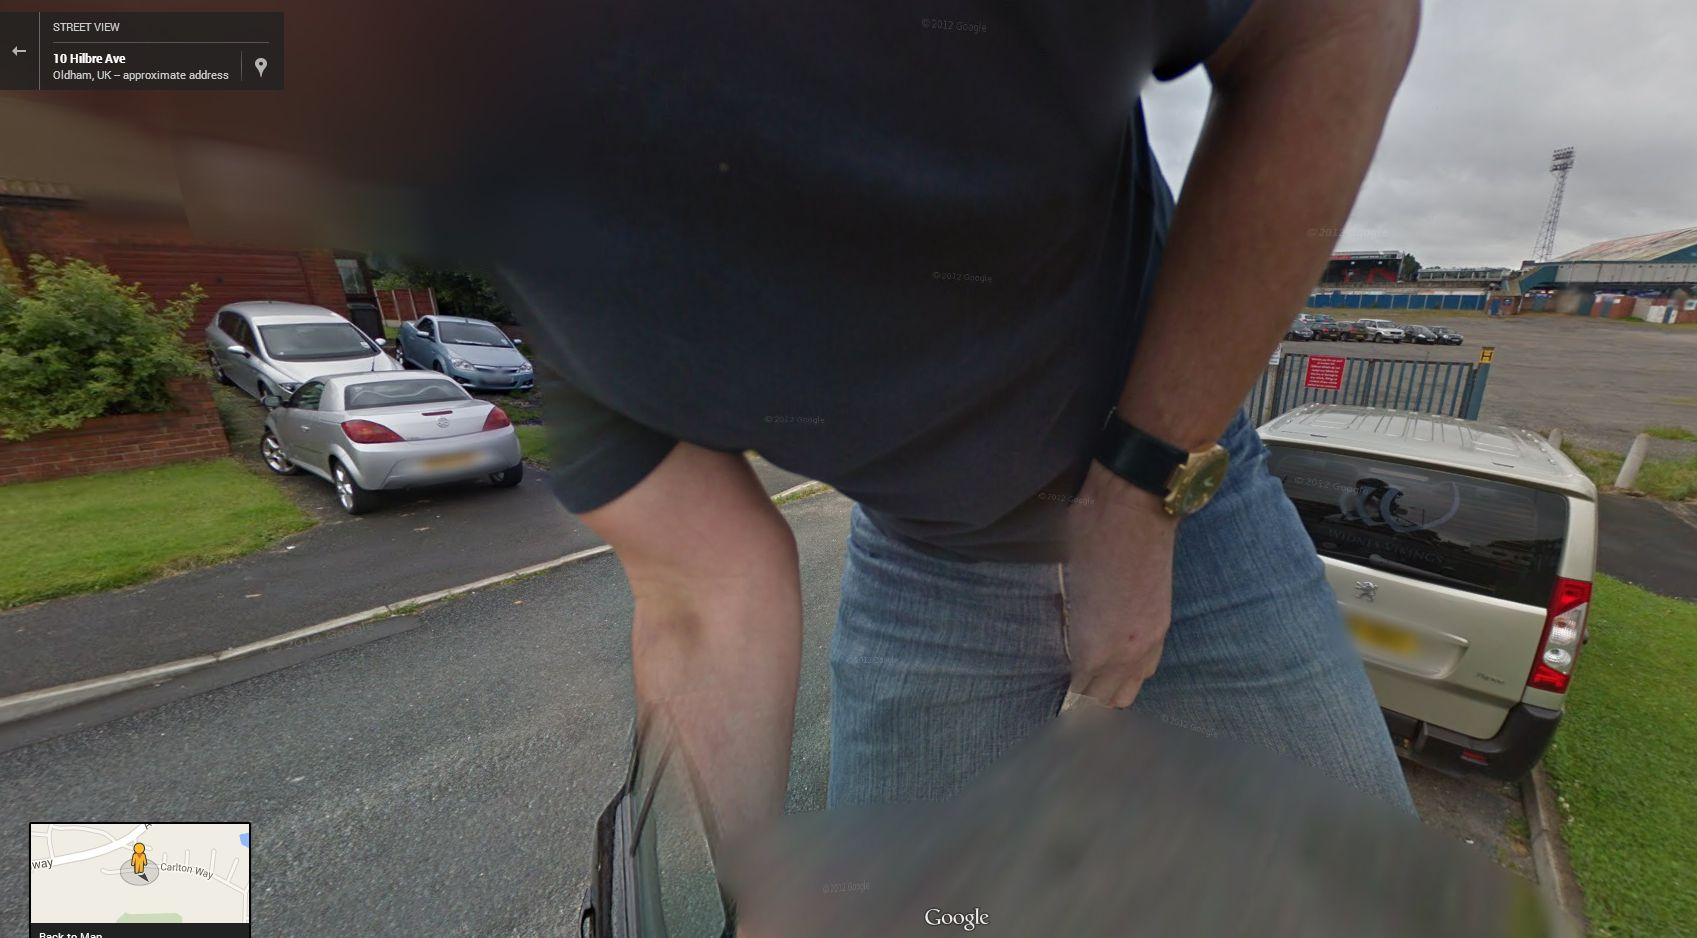 Hilarious – Guy Trying Some Moves on the Google Street View Camera